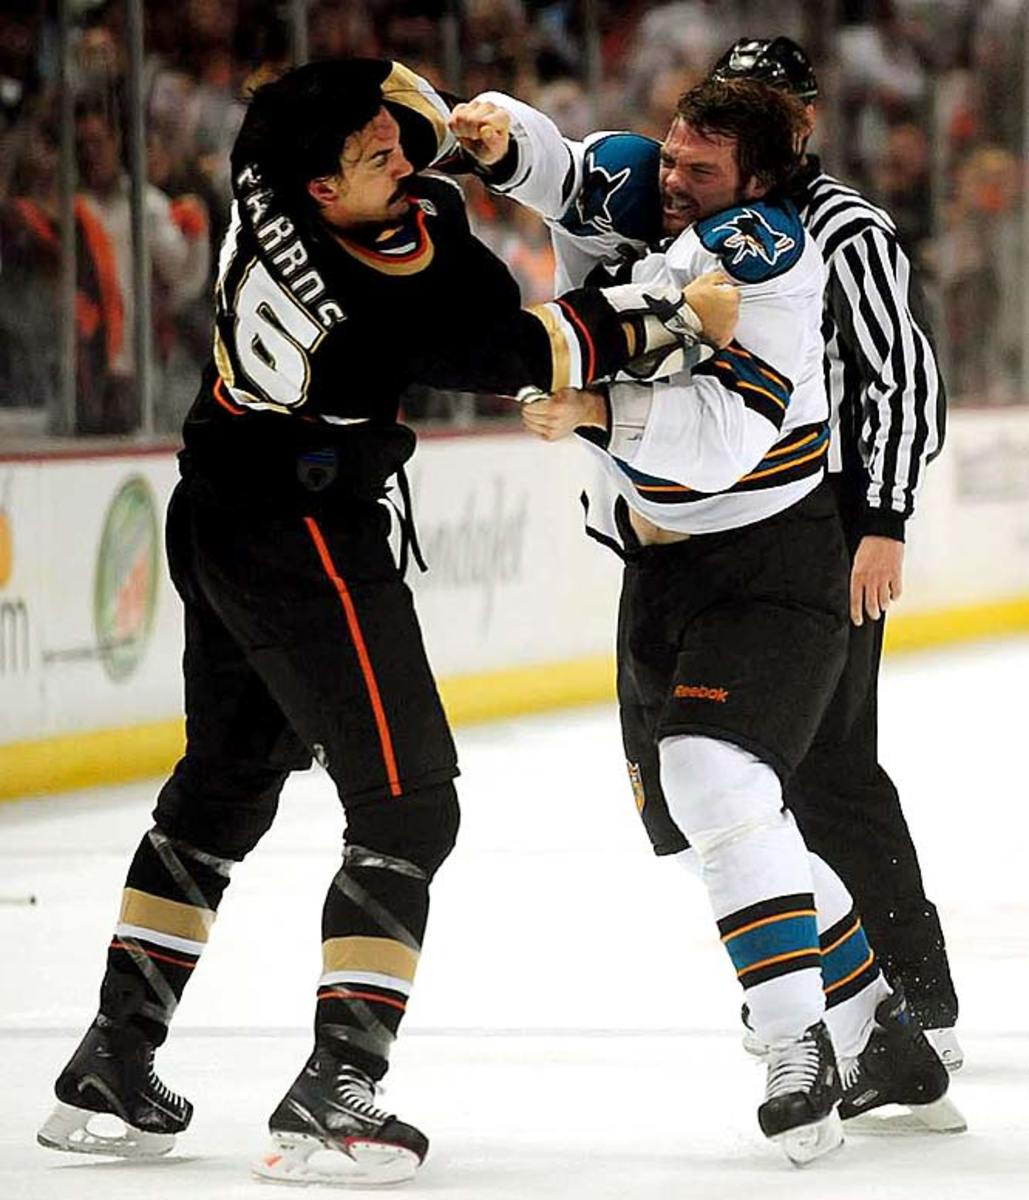 George Parros and Douglas Murray fight